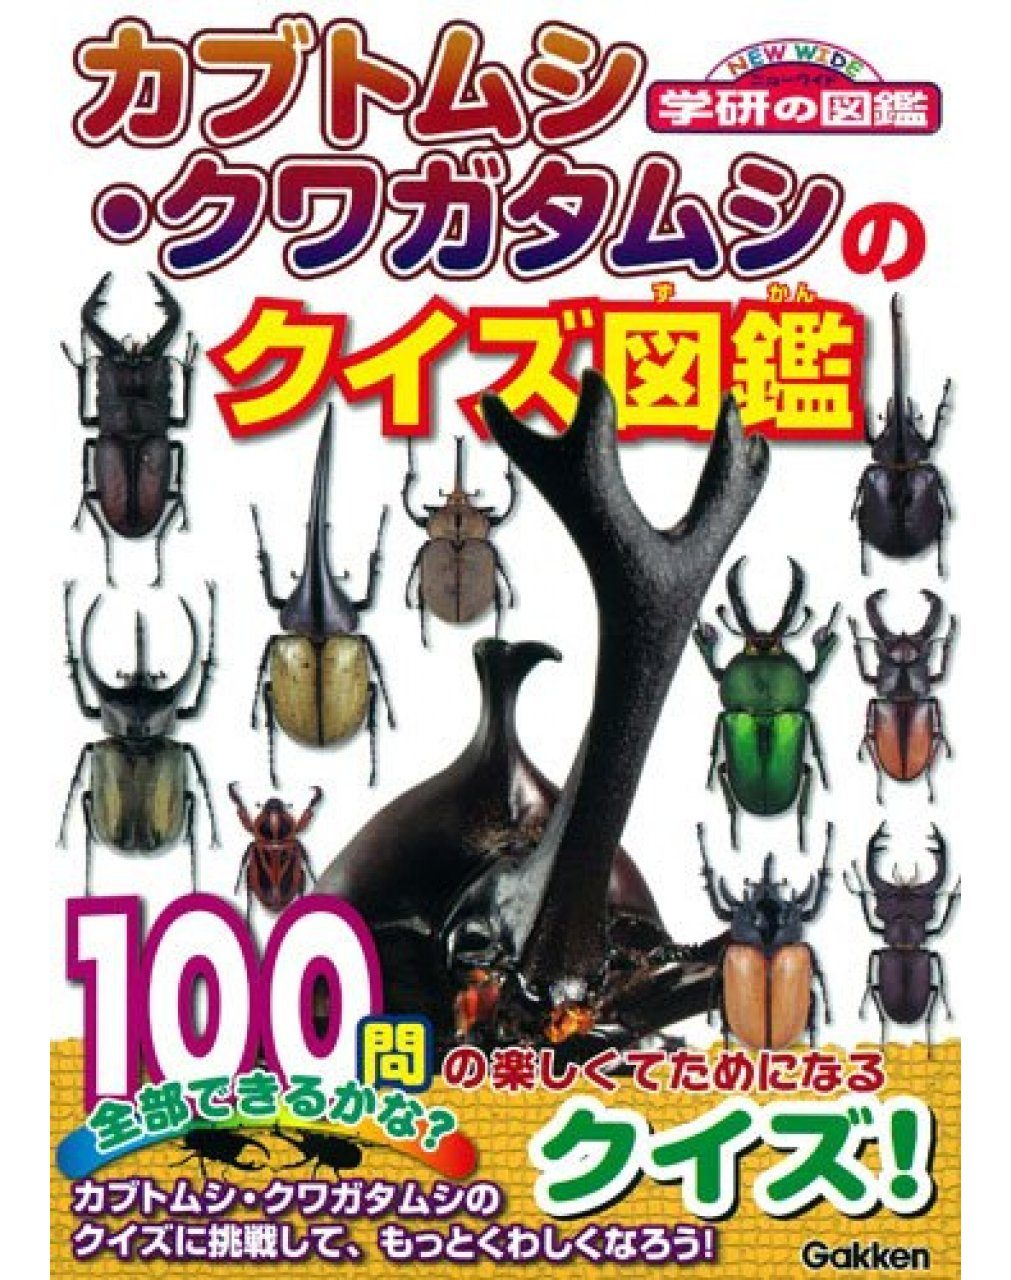 Kabutomushi Kuwagatamushi no Kuizu Zukan [A Quiz Book of Stag Beetles]